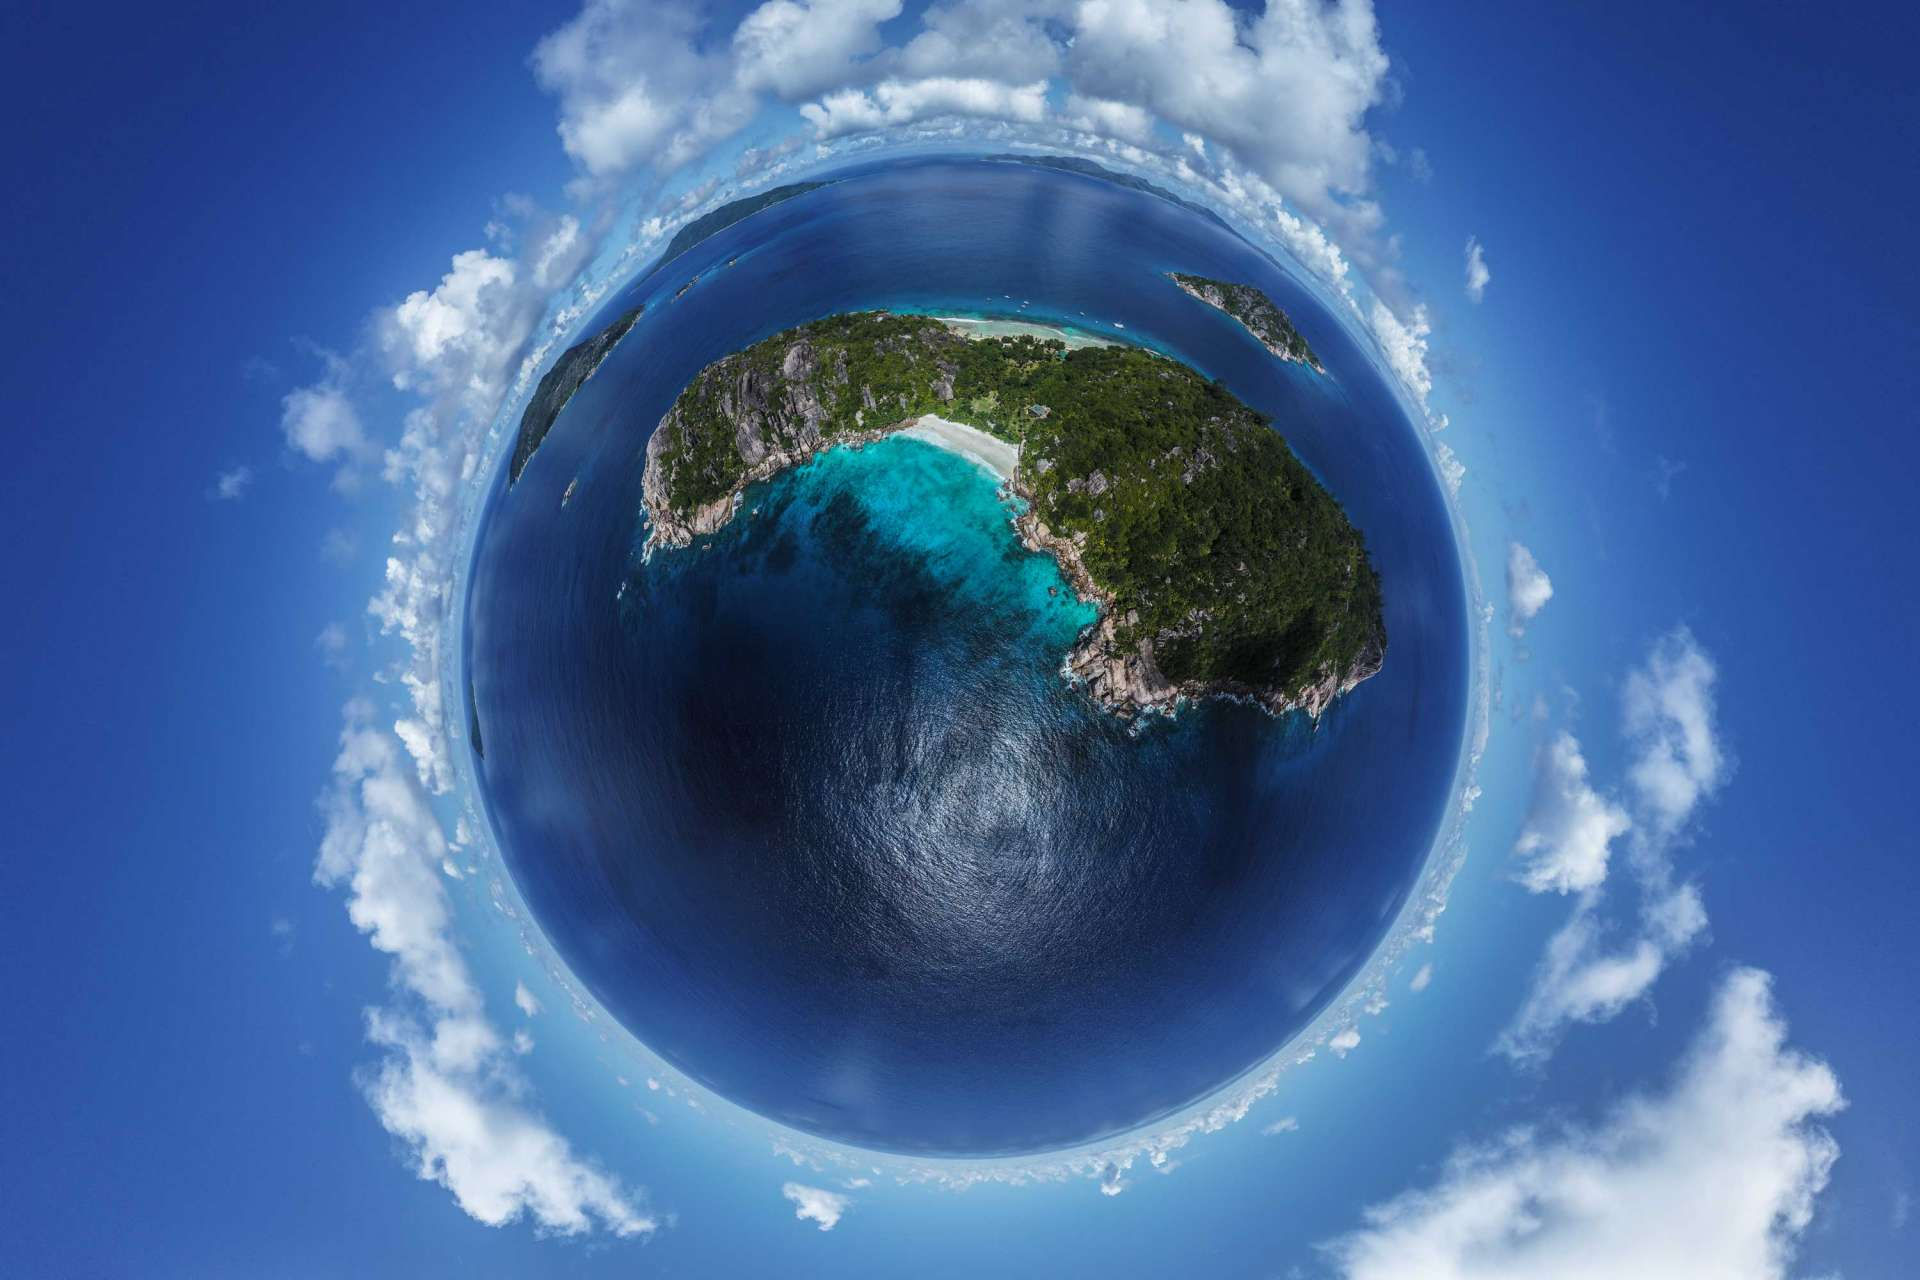 Seychelles Tiny Planet Grande Soeur Big Sister Island aerial view drone enrico pescantini from above